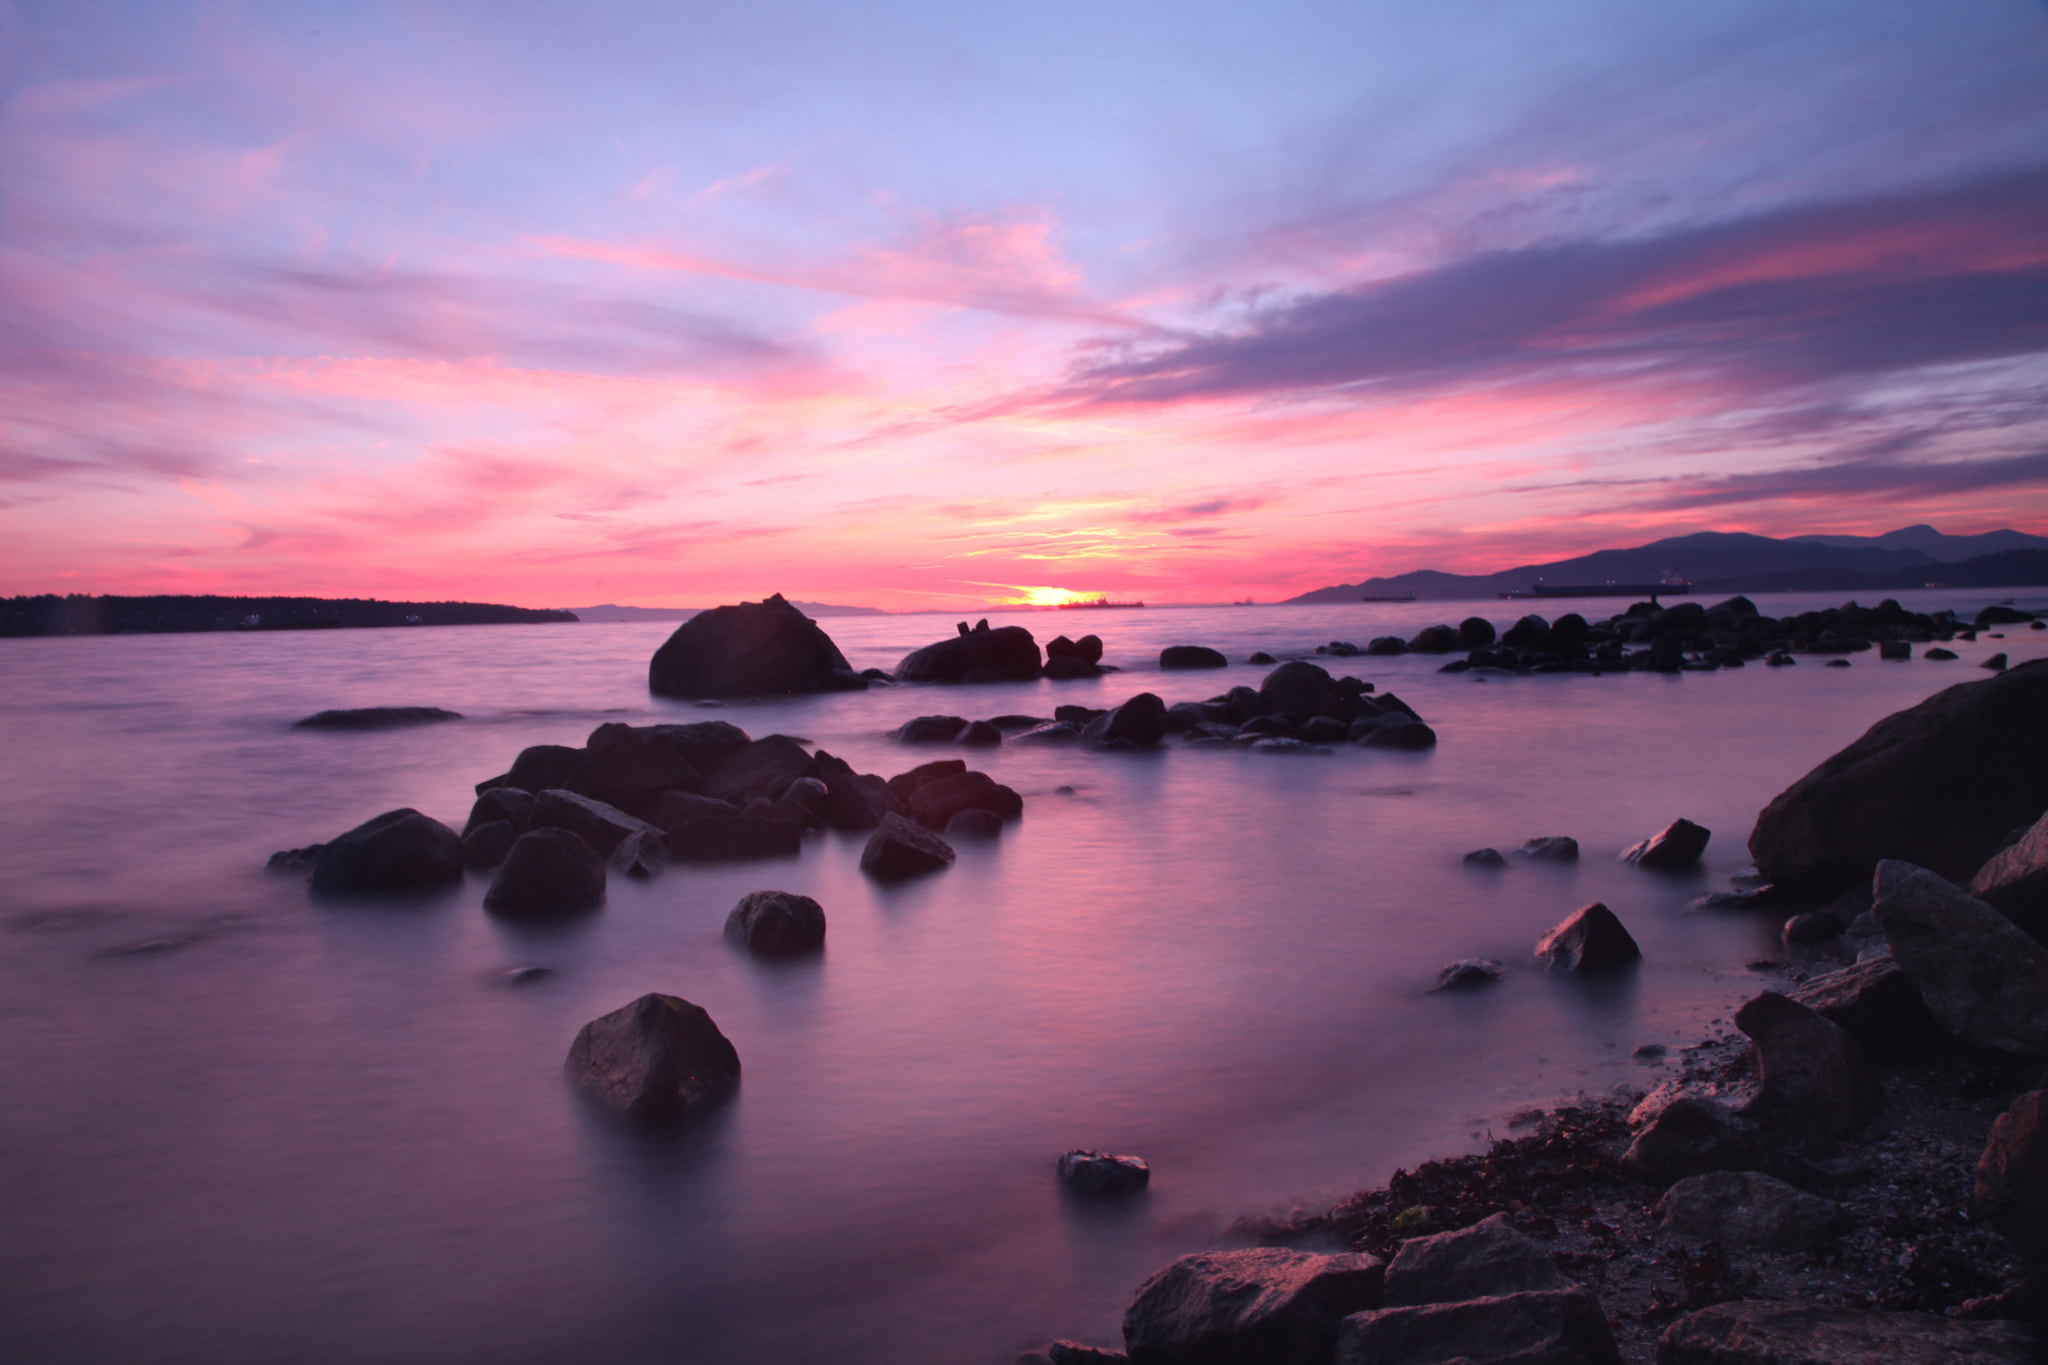 Photograph The colors of twilight by Edward Lai on 500px